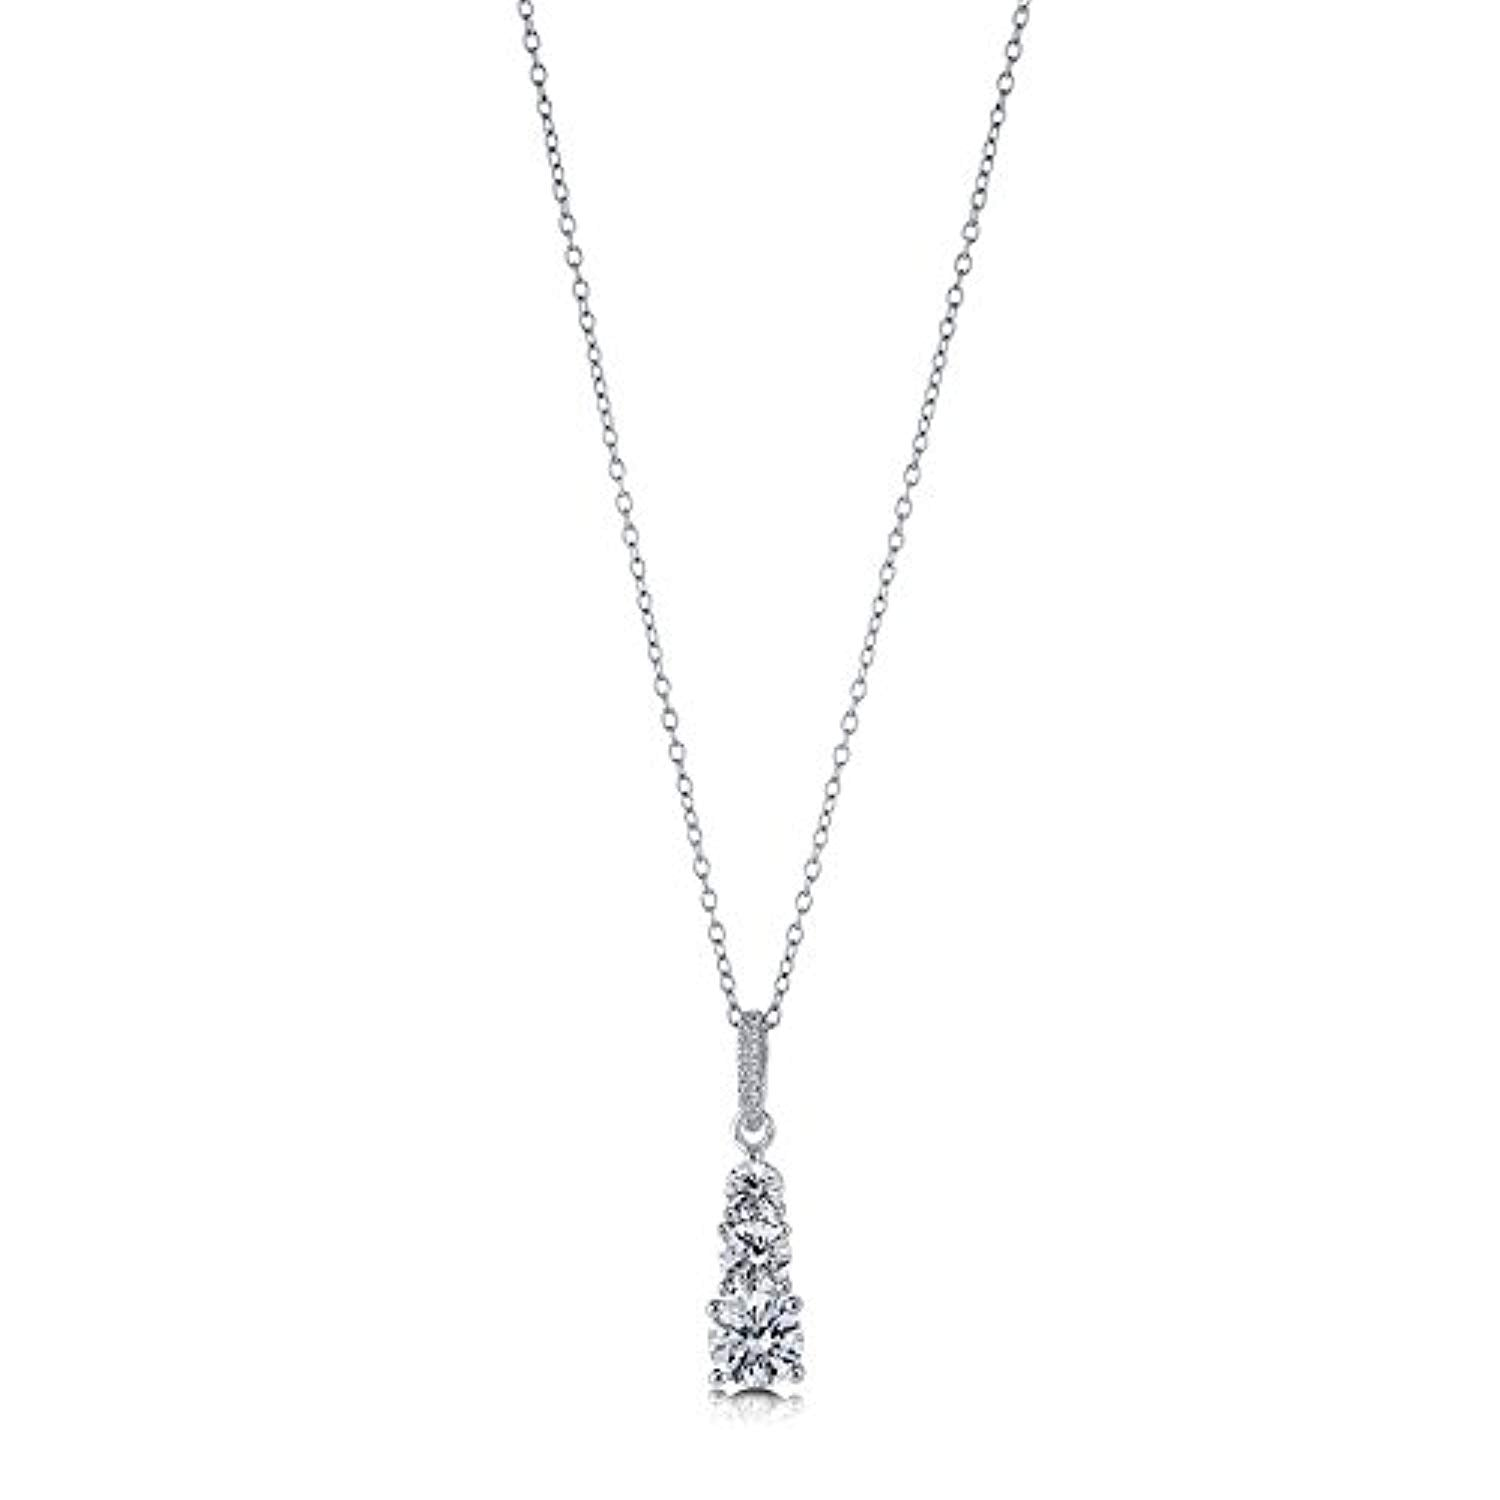 Rhodium Plated Pendant Necklace